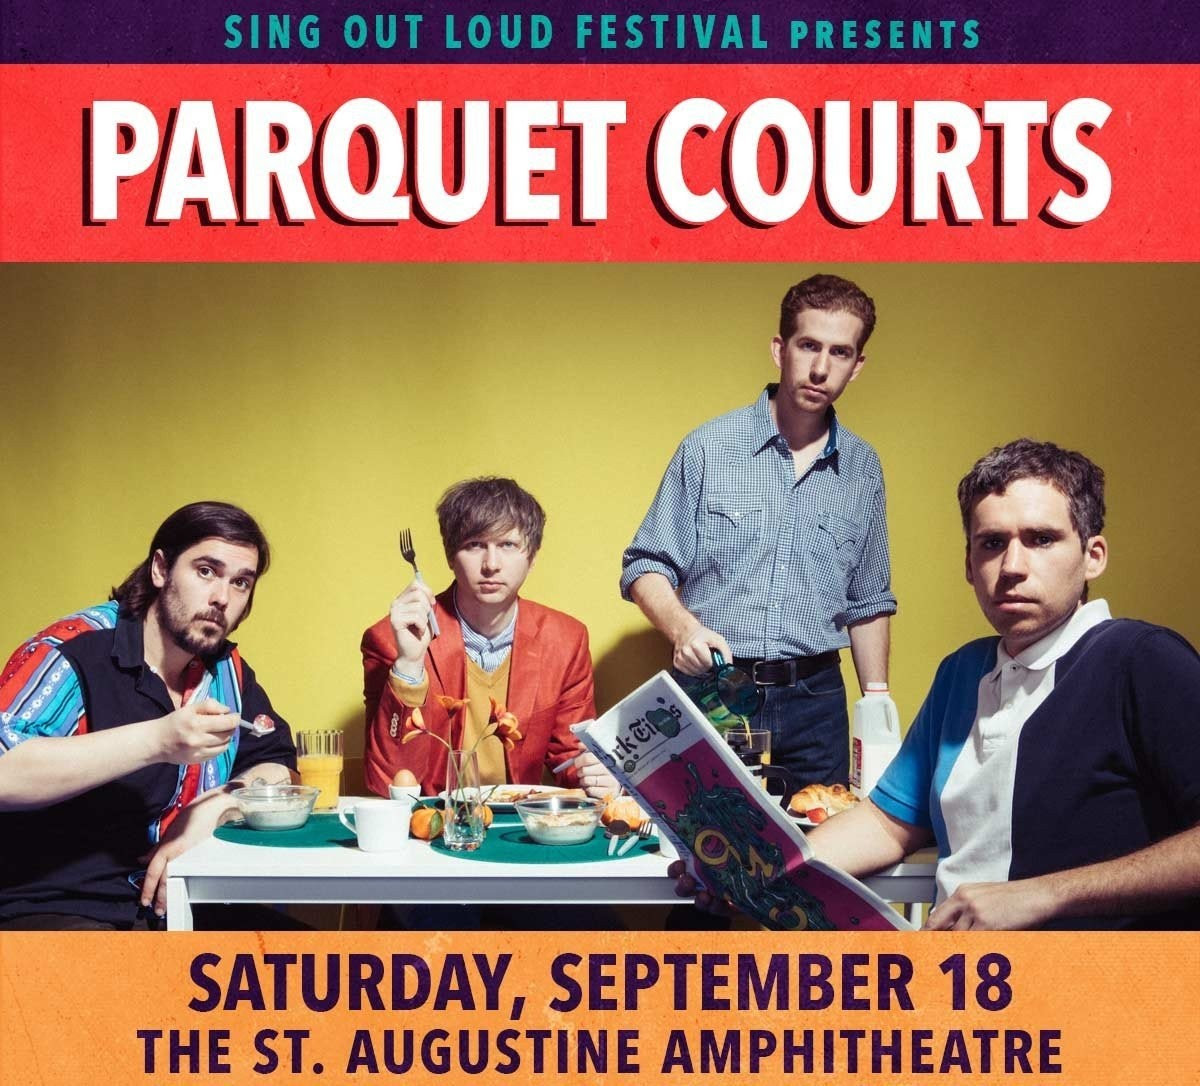 Parquet Courts sing out loud